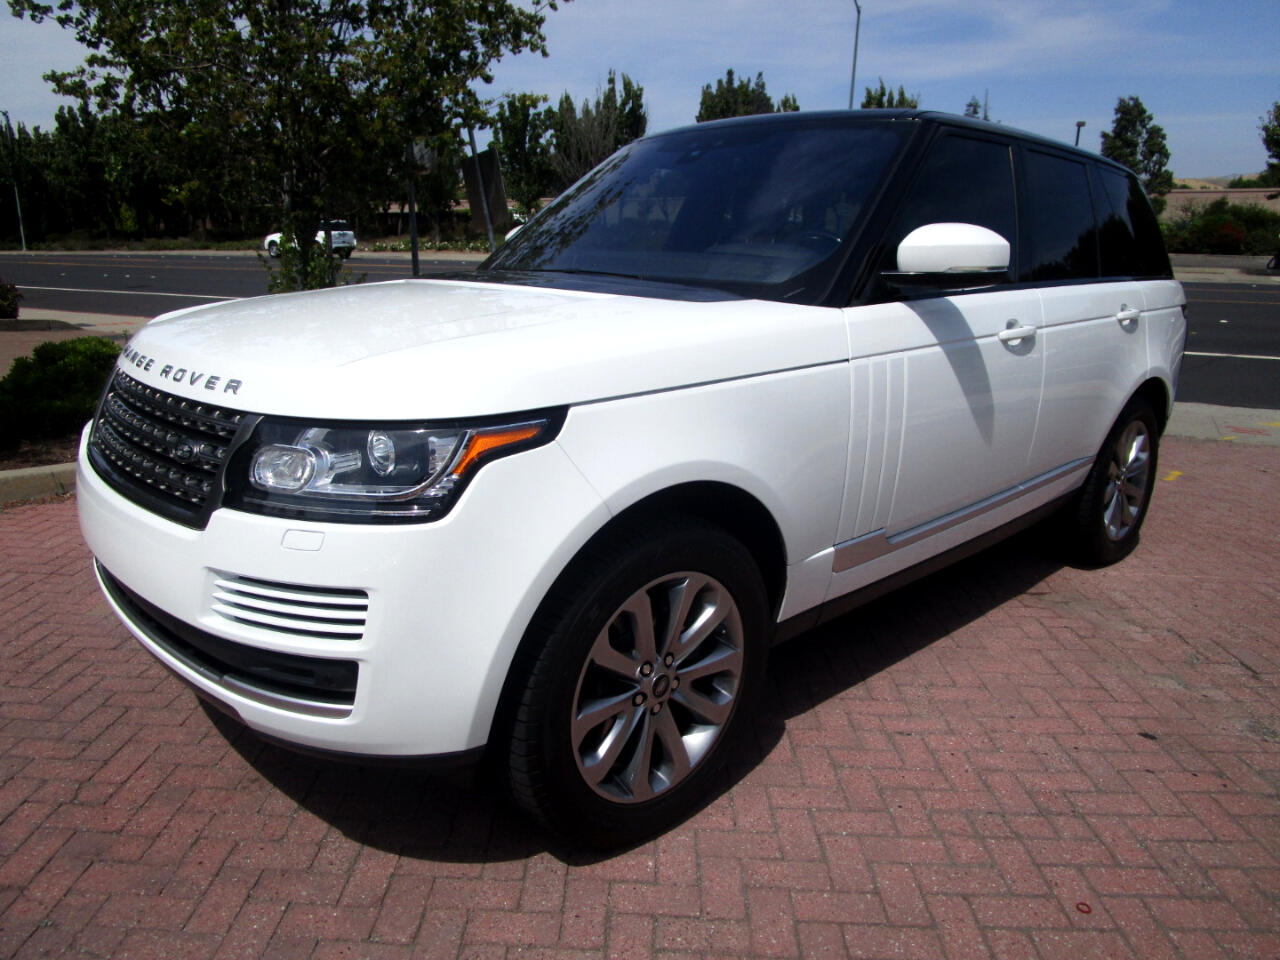 2017 Land Rover Range Rover SUPERCHARGED 3.0 LITER V6**HEAT SEATS*NAV*SAT*PANO